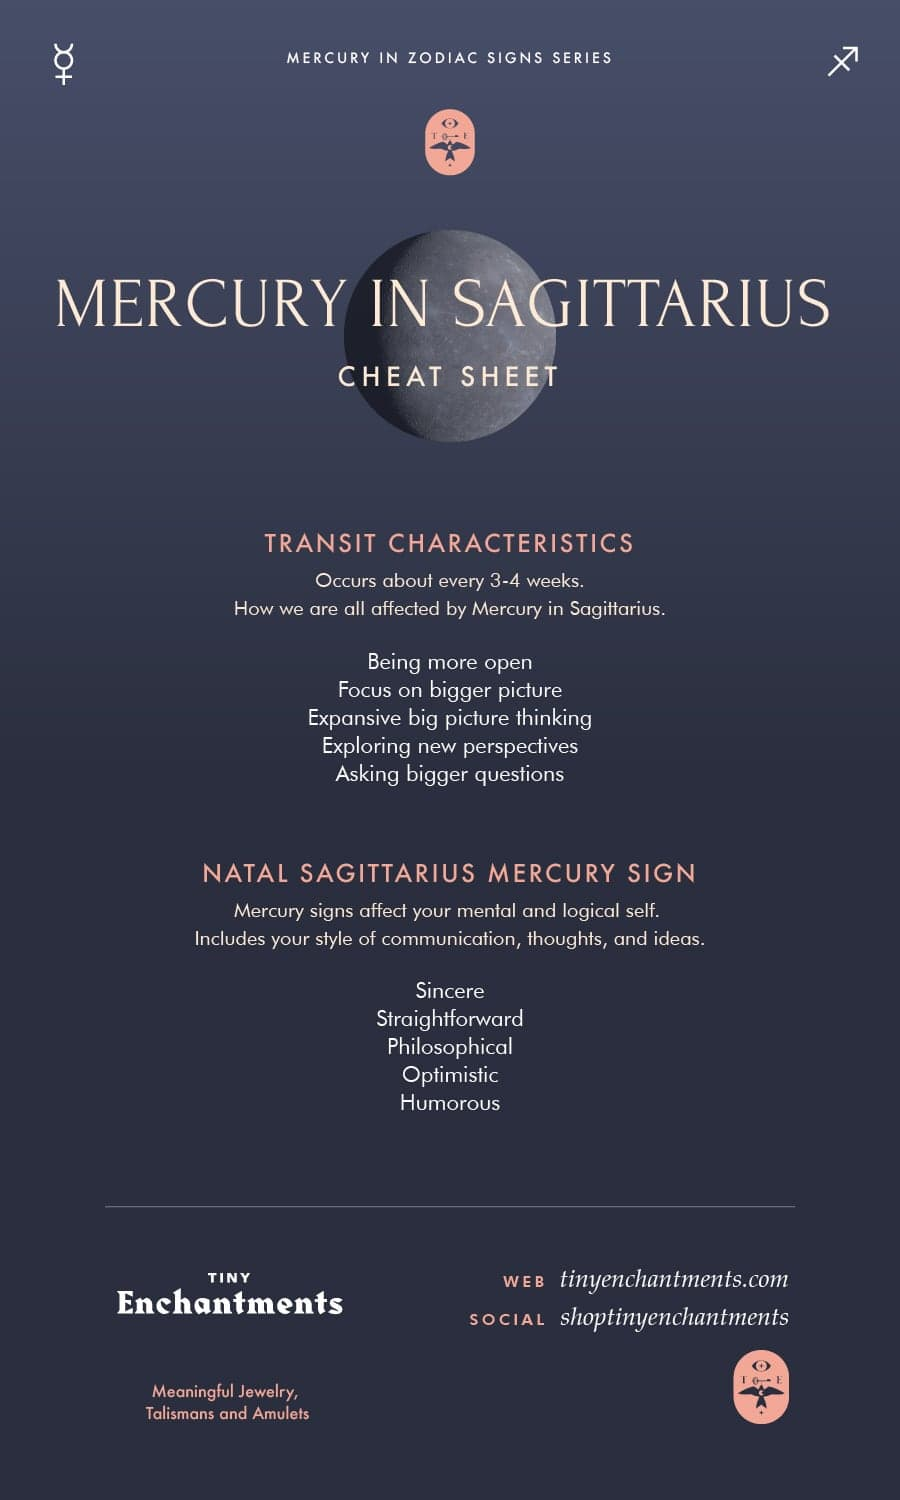 Mercury in Sagittarius - Sagittarius Mercury Sign and Mercury in Sagittarius Transit Meanings